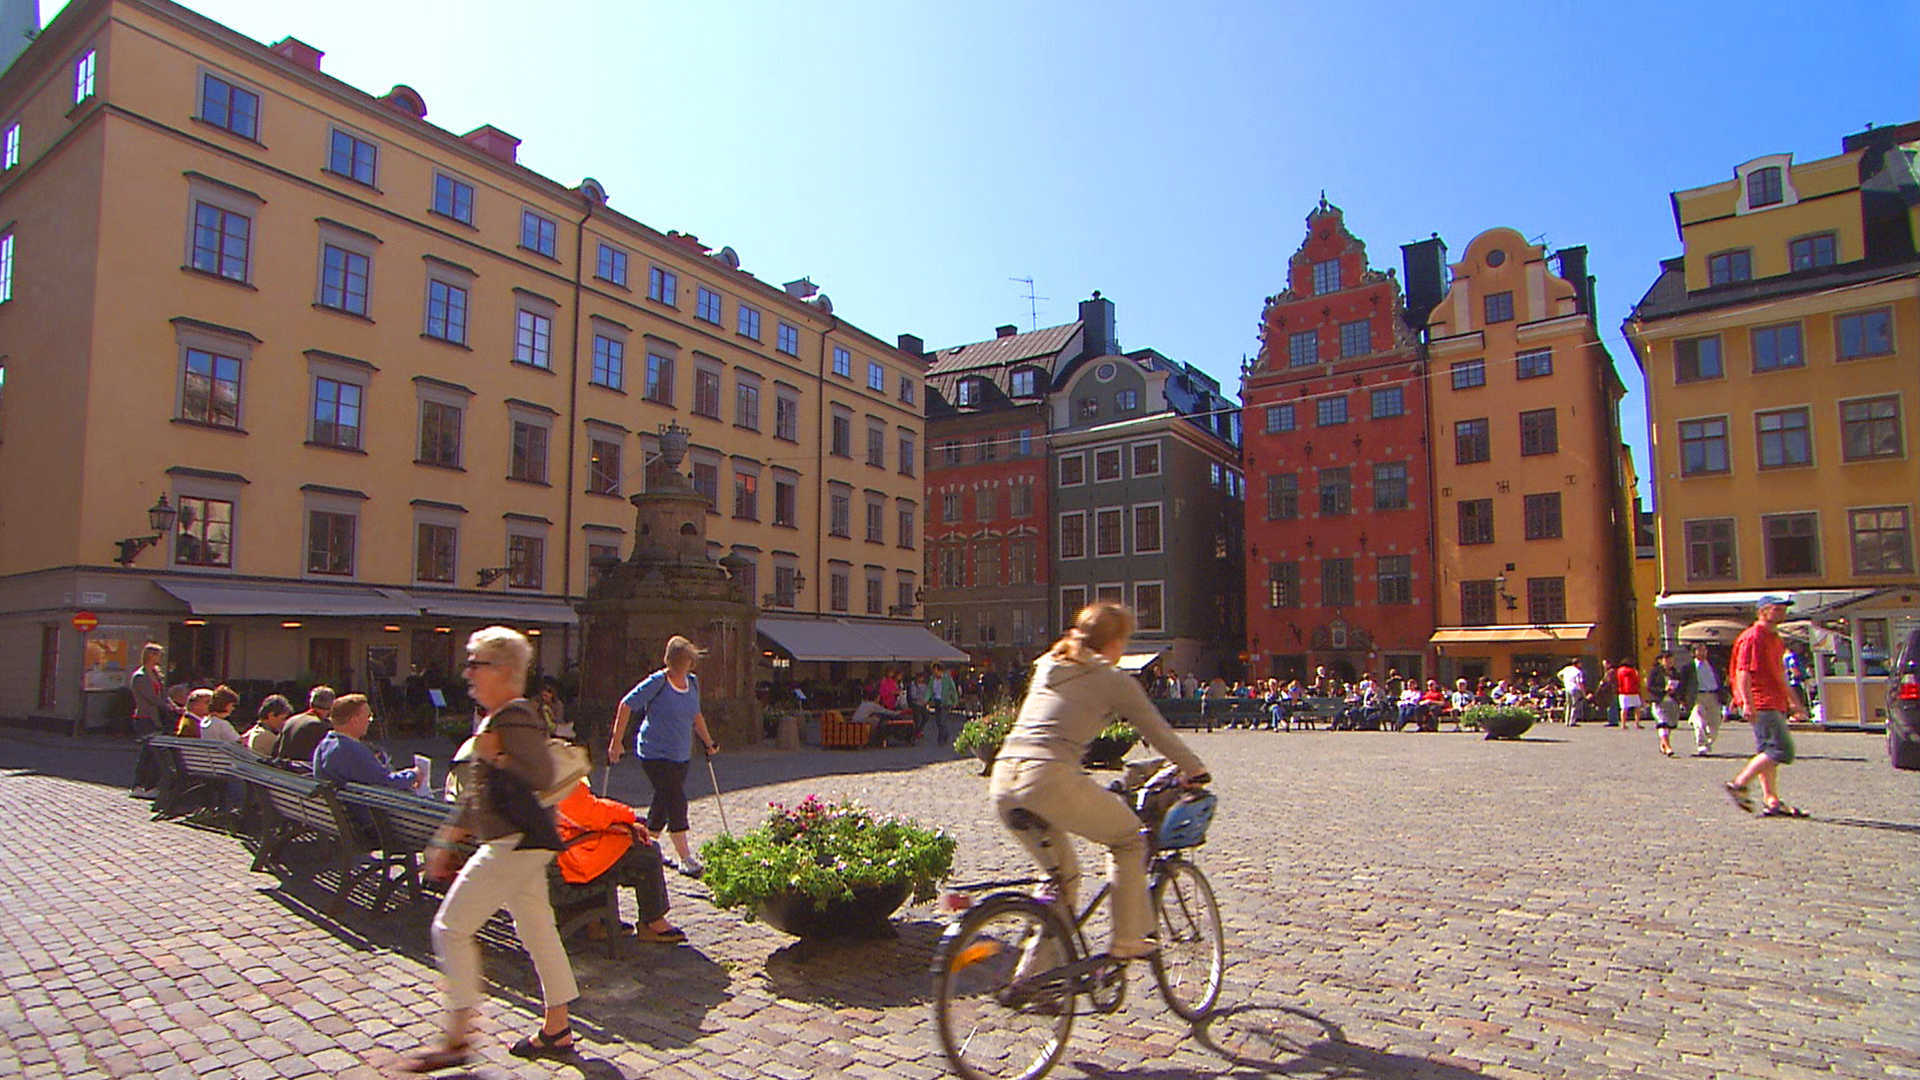 Stockholm's old town in Sweden